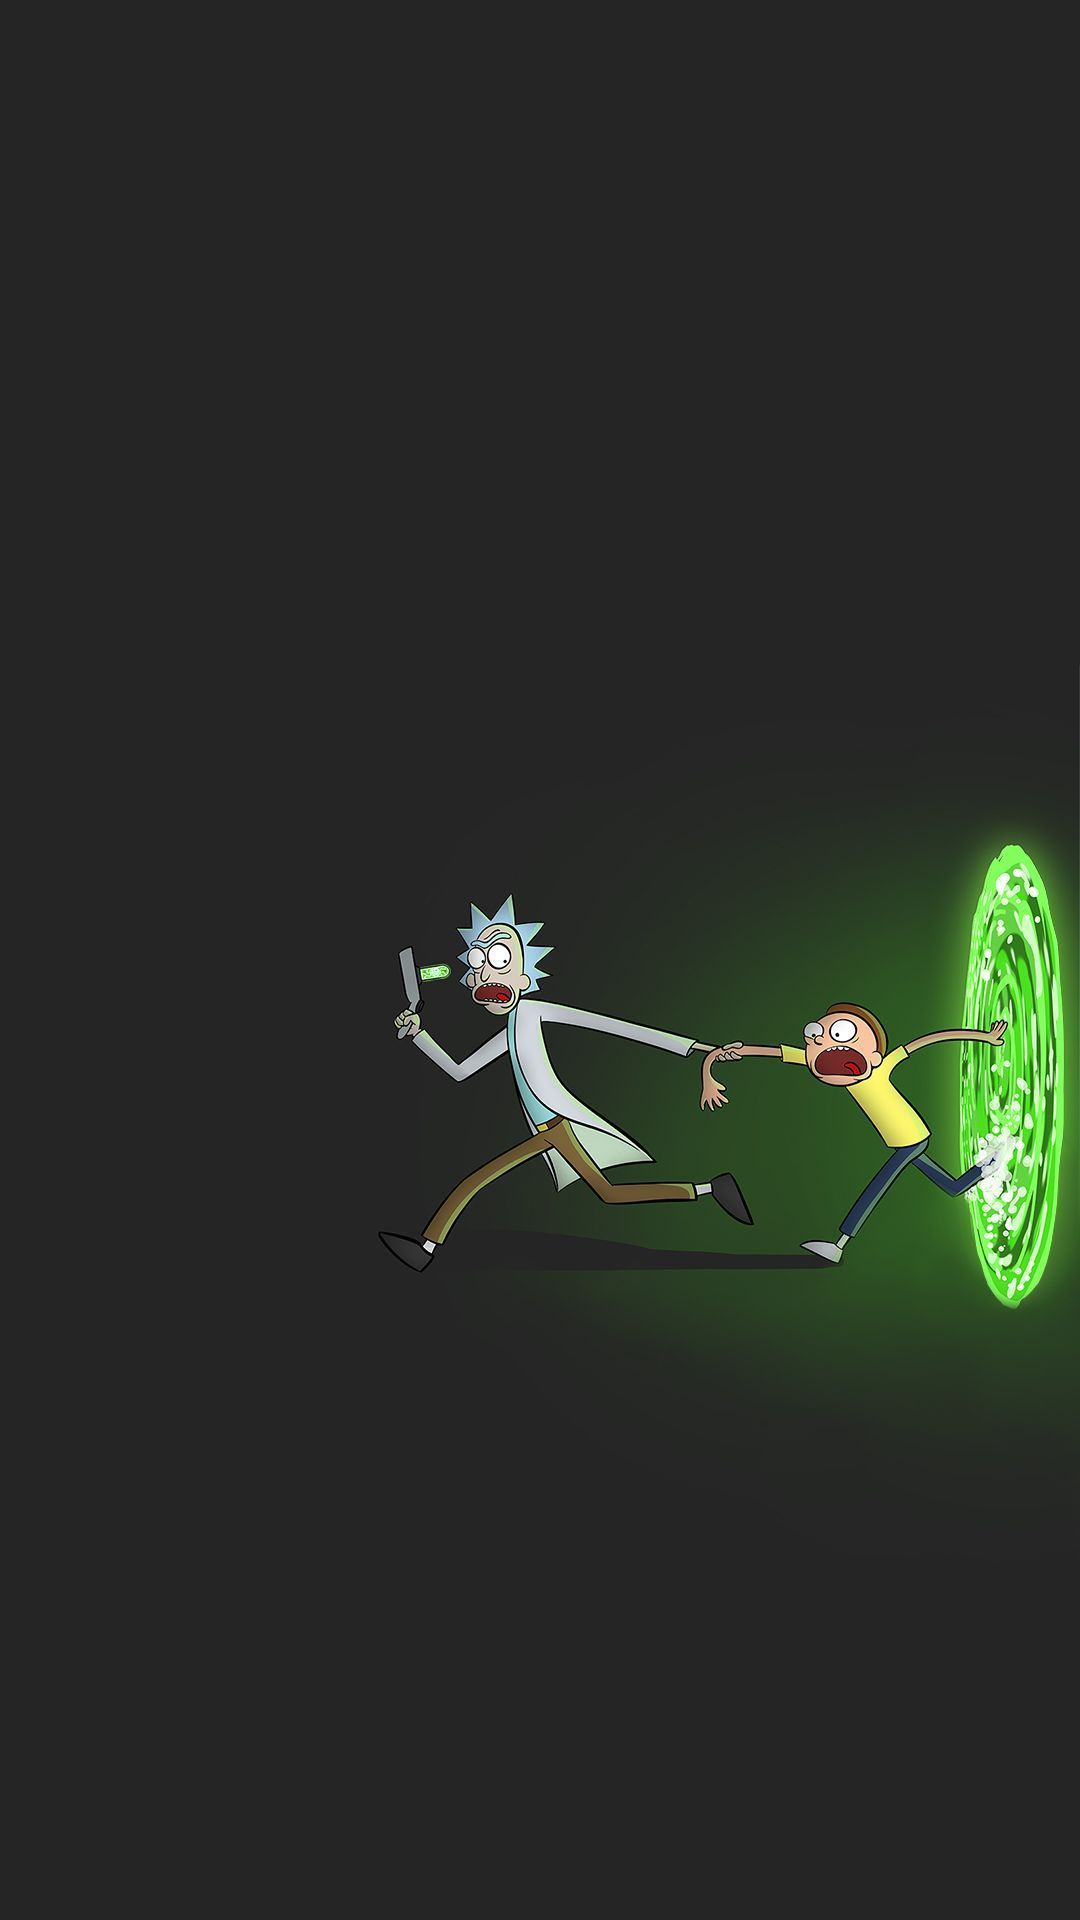 Rick Morty Wallpapers Click Image Link To Get More Wallpapers